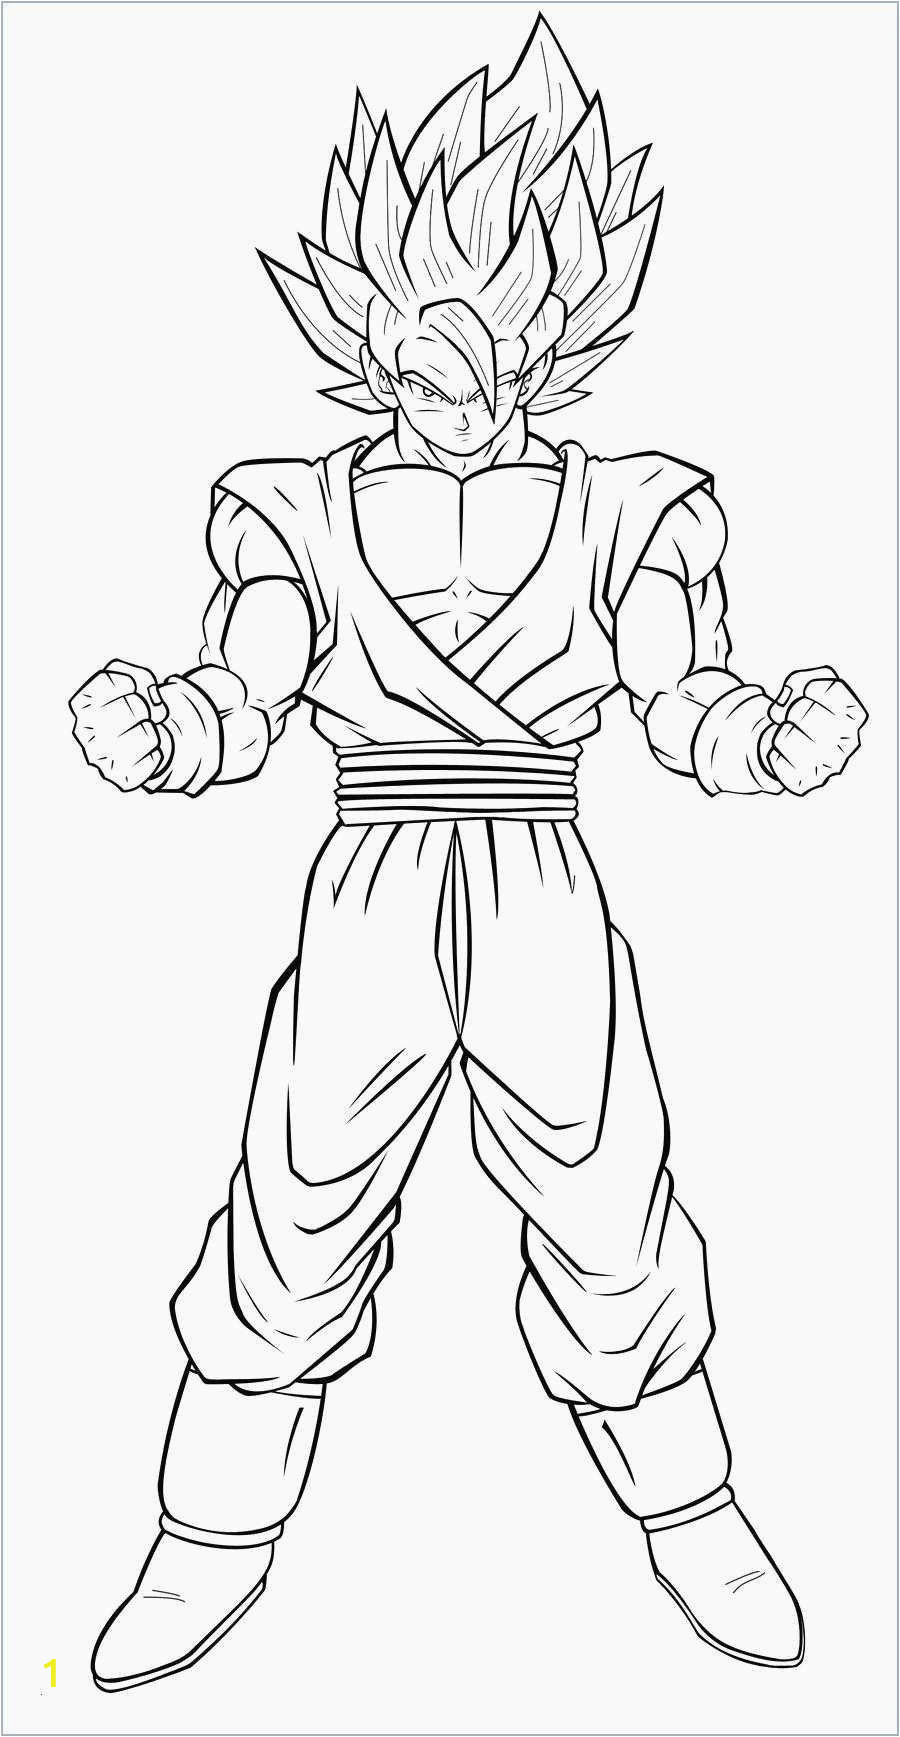 Coloring Pages Dragon Ball Z Dragon Ball Z Coloring Pages Best Coloring Arts 56 Dragon